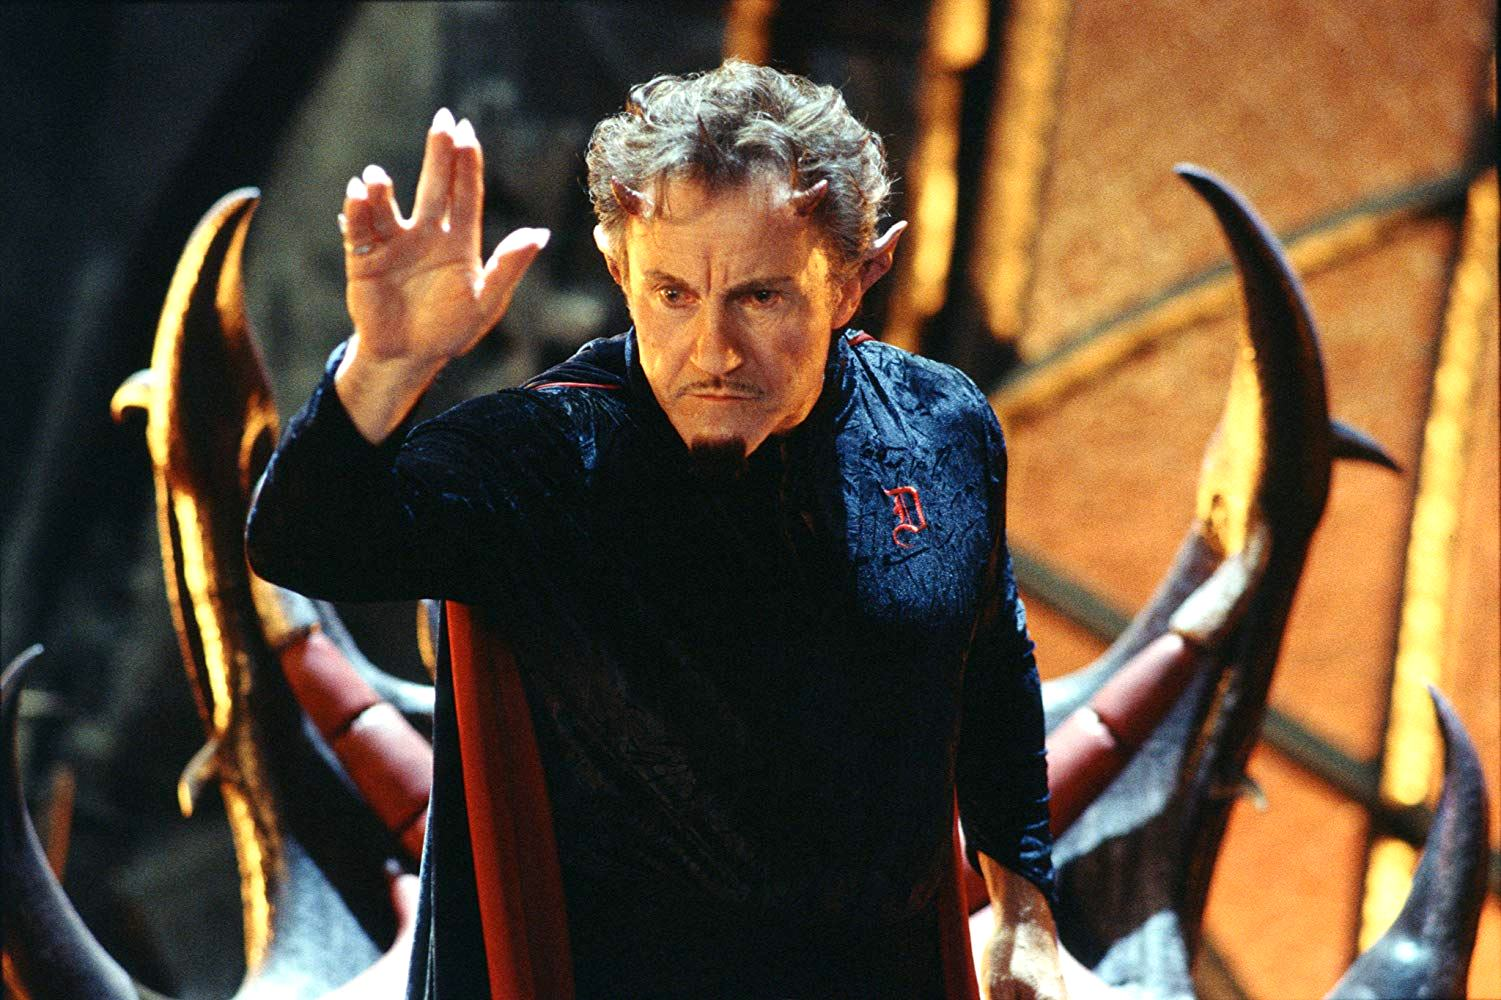 Harvey Keitel as Satan in Little Nicky (2000)